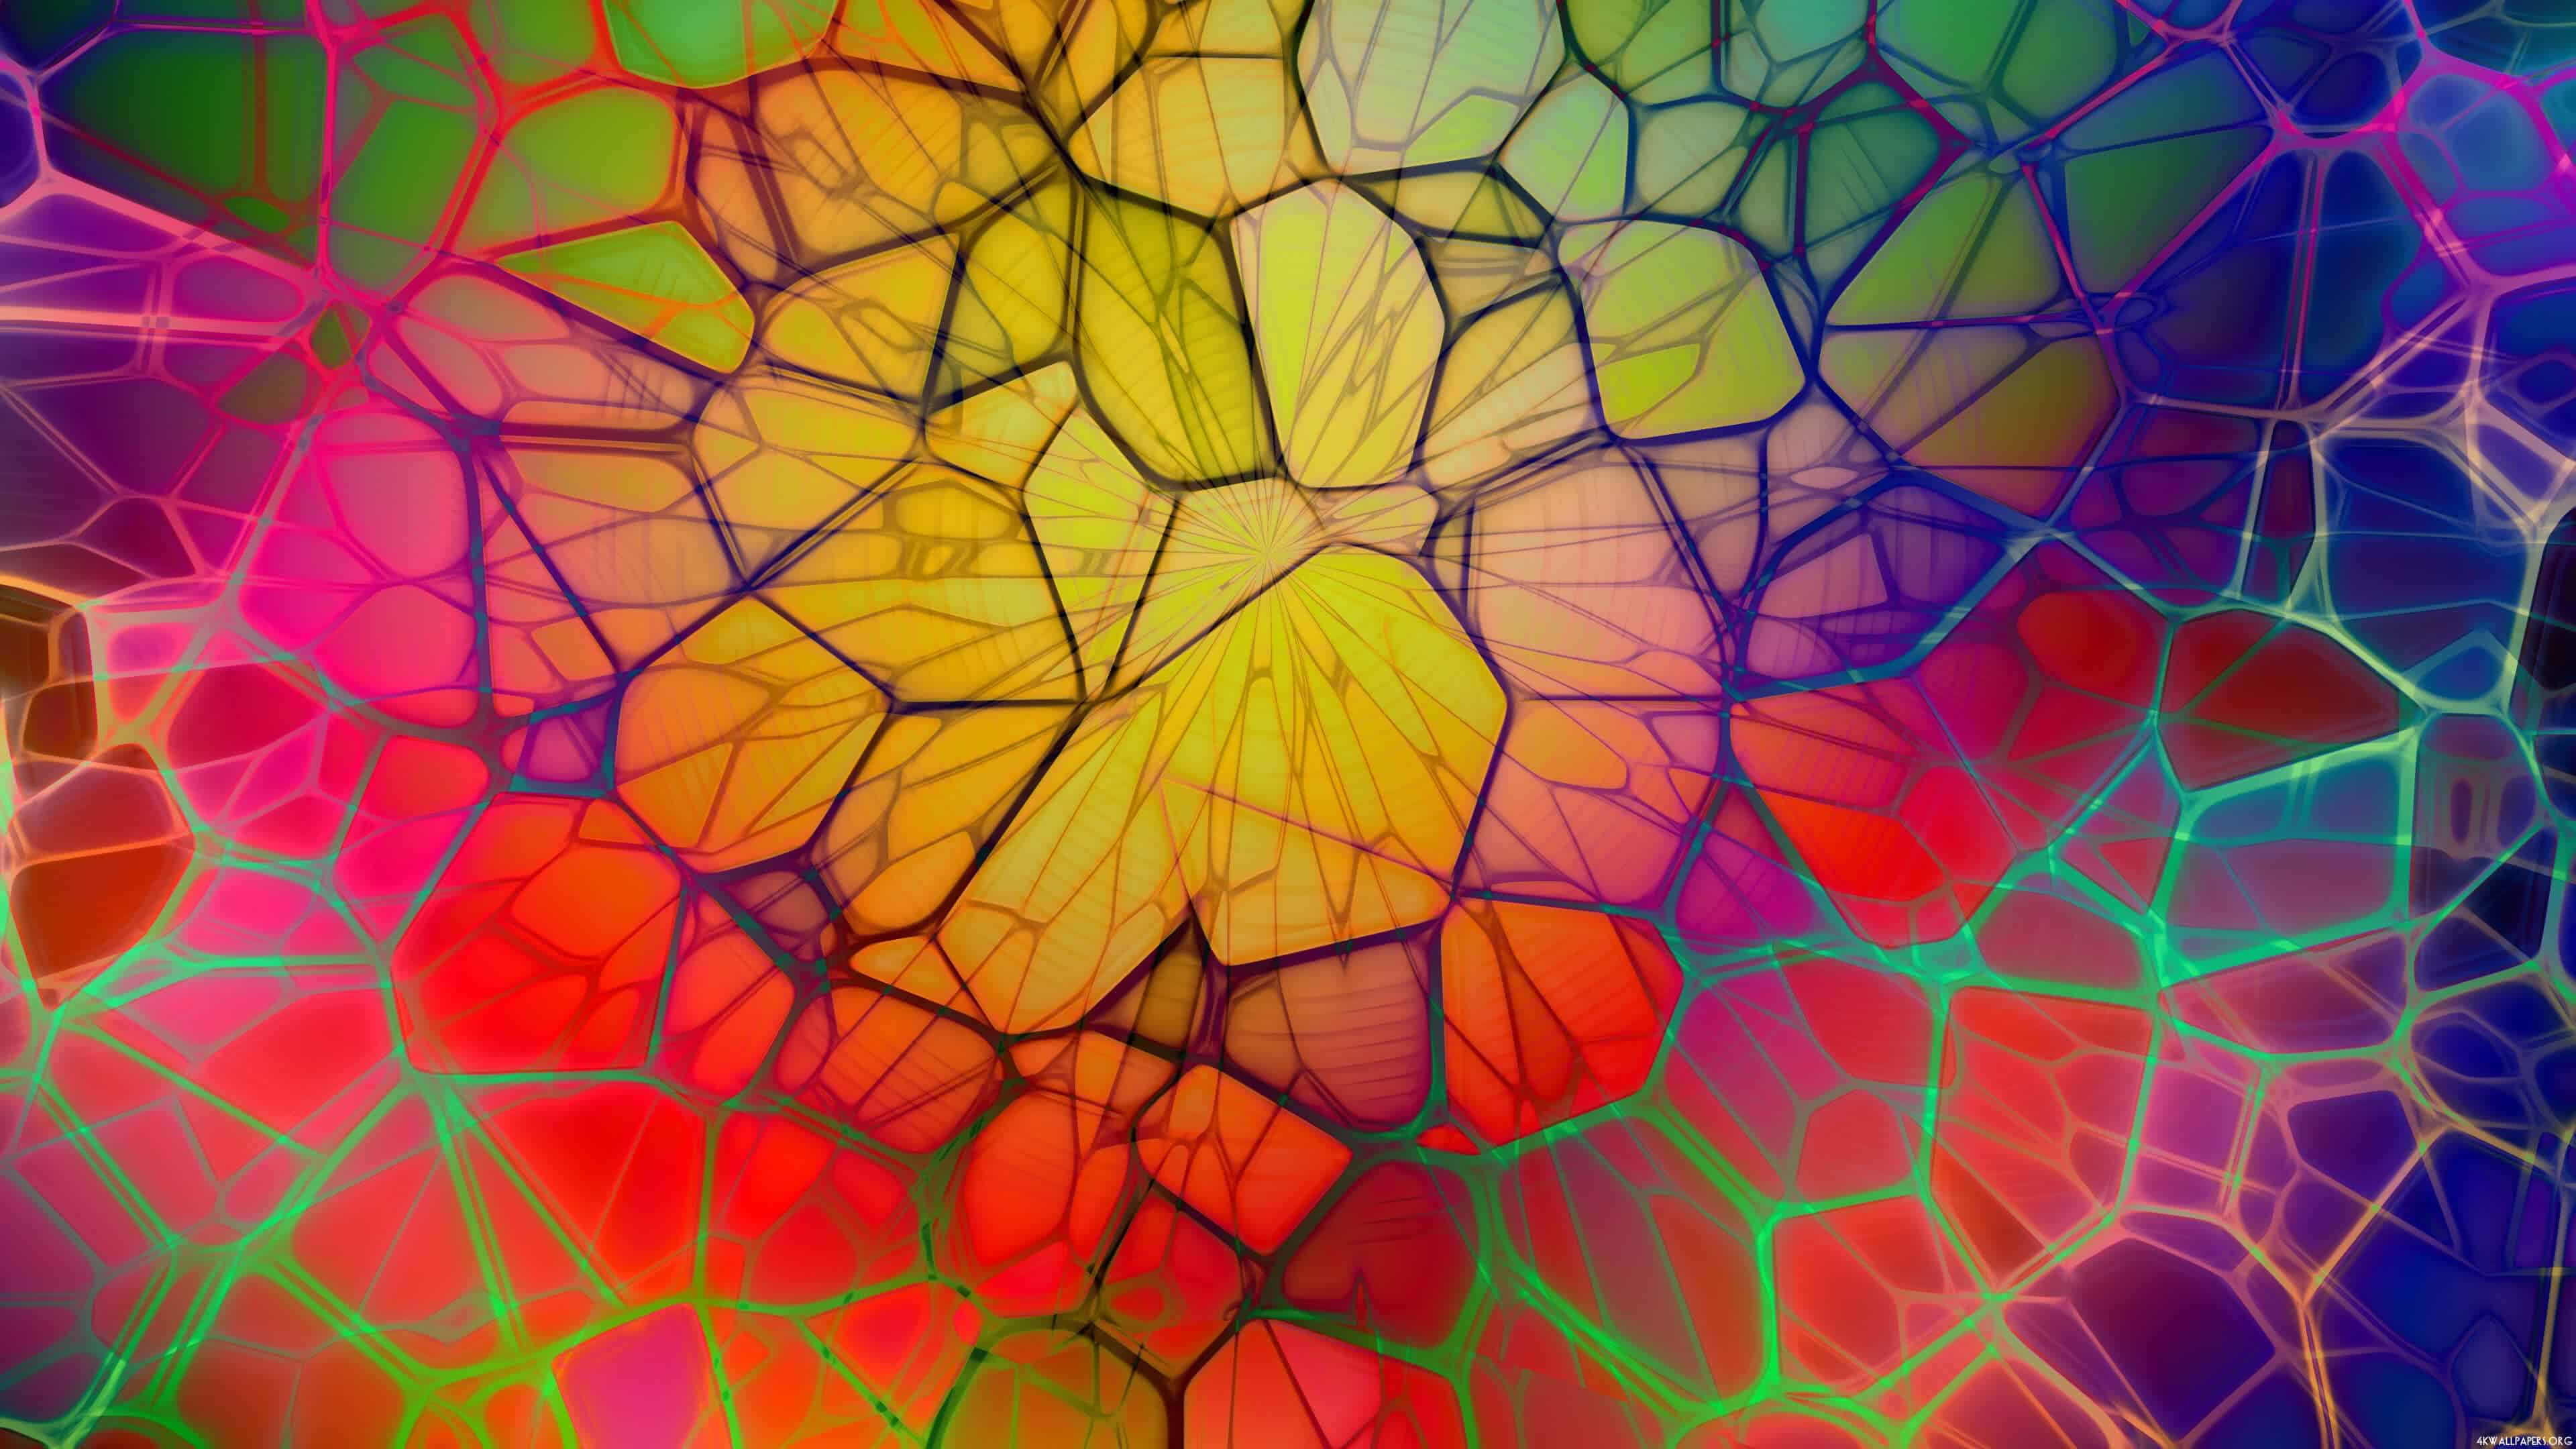 Colorful Abstract Uhd 4k Wallpaper  Pixelz